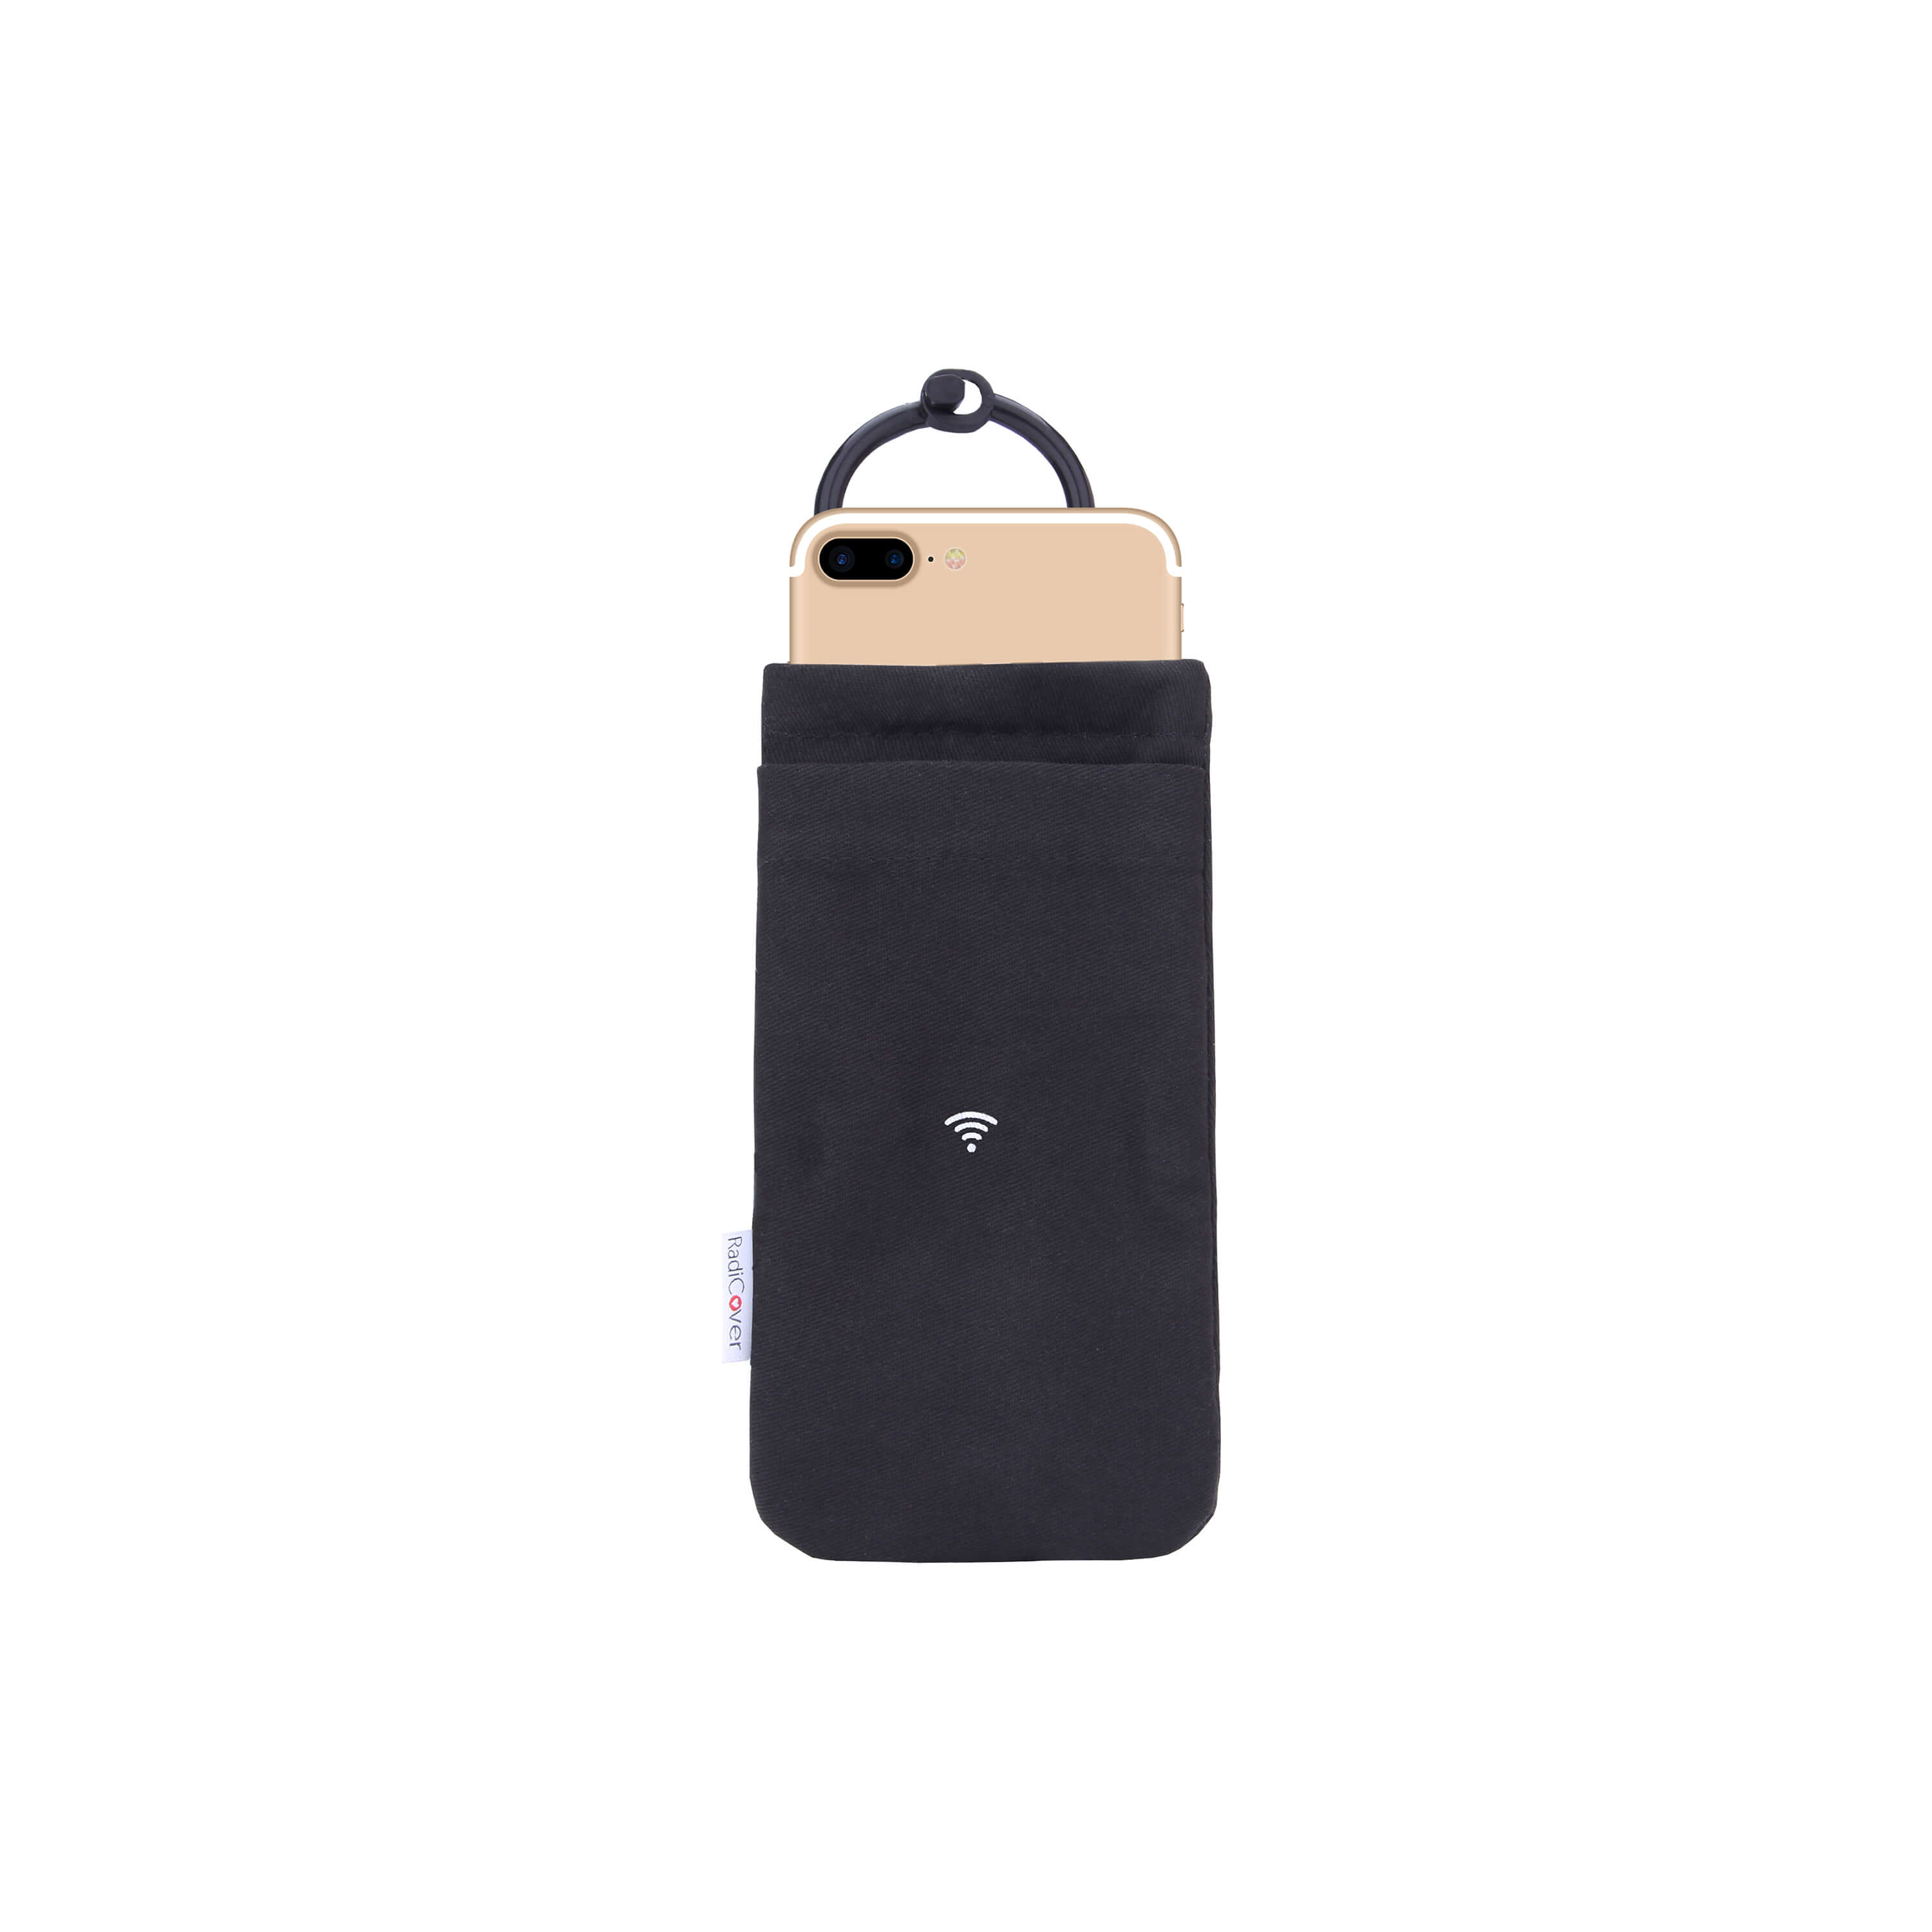 RadiCover - Mobile Phone Pouch - Anti radiation - Small - Black (RAD013)